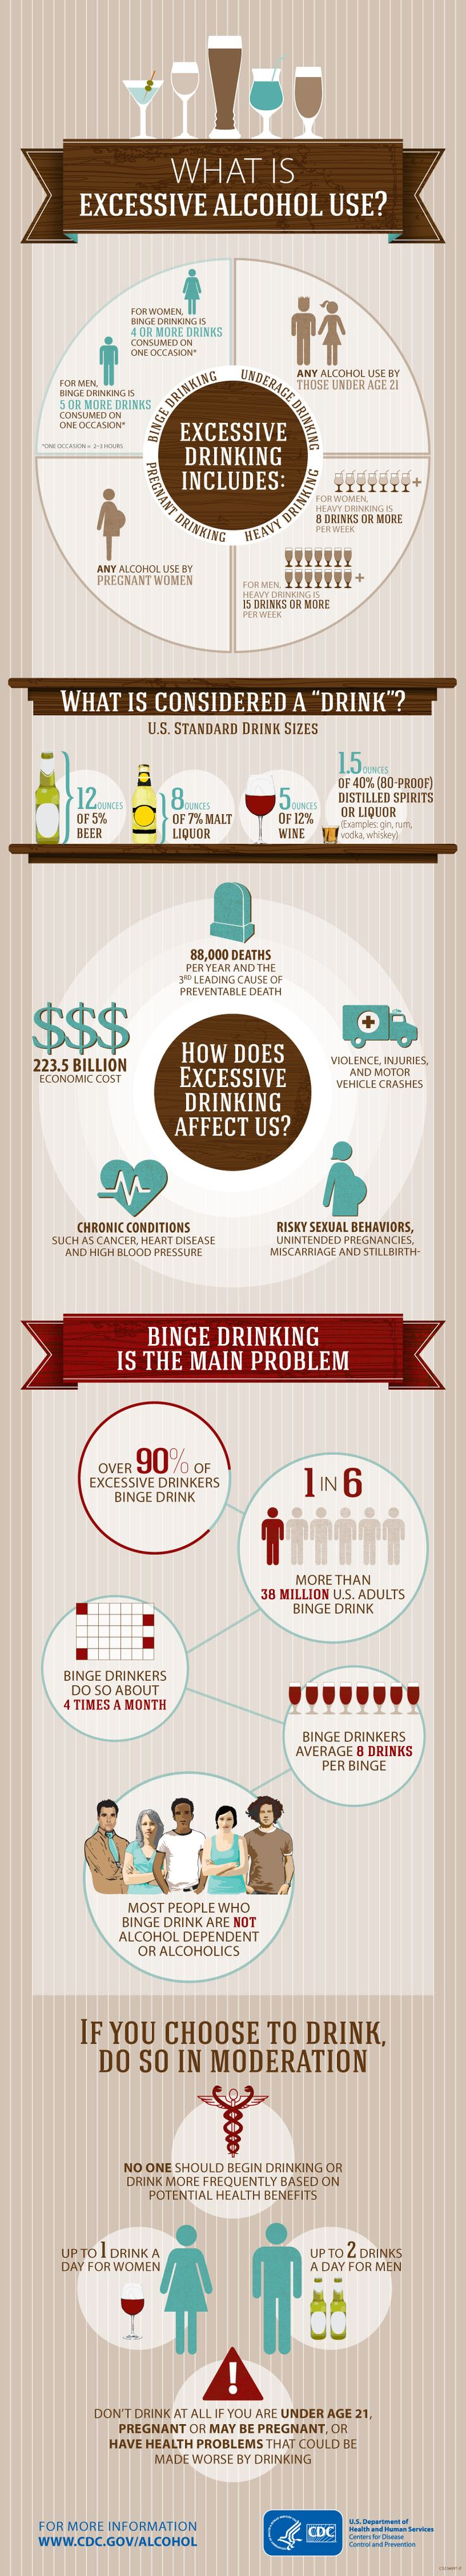 Infographic - What Is Excessive Alcohol Use?                                                                                                                                                     More